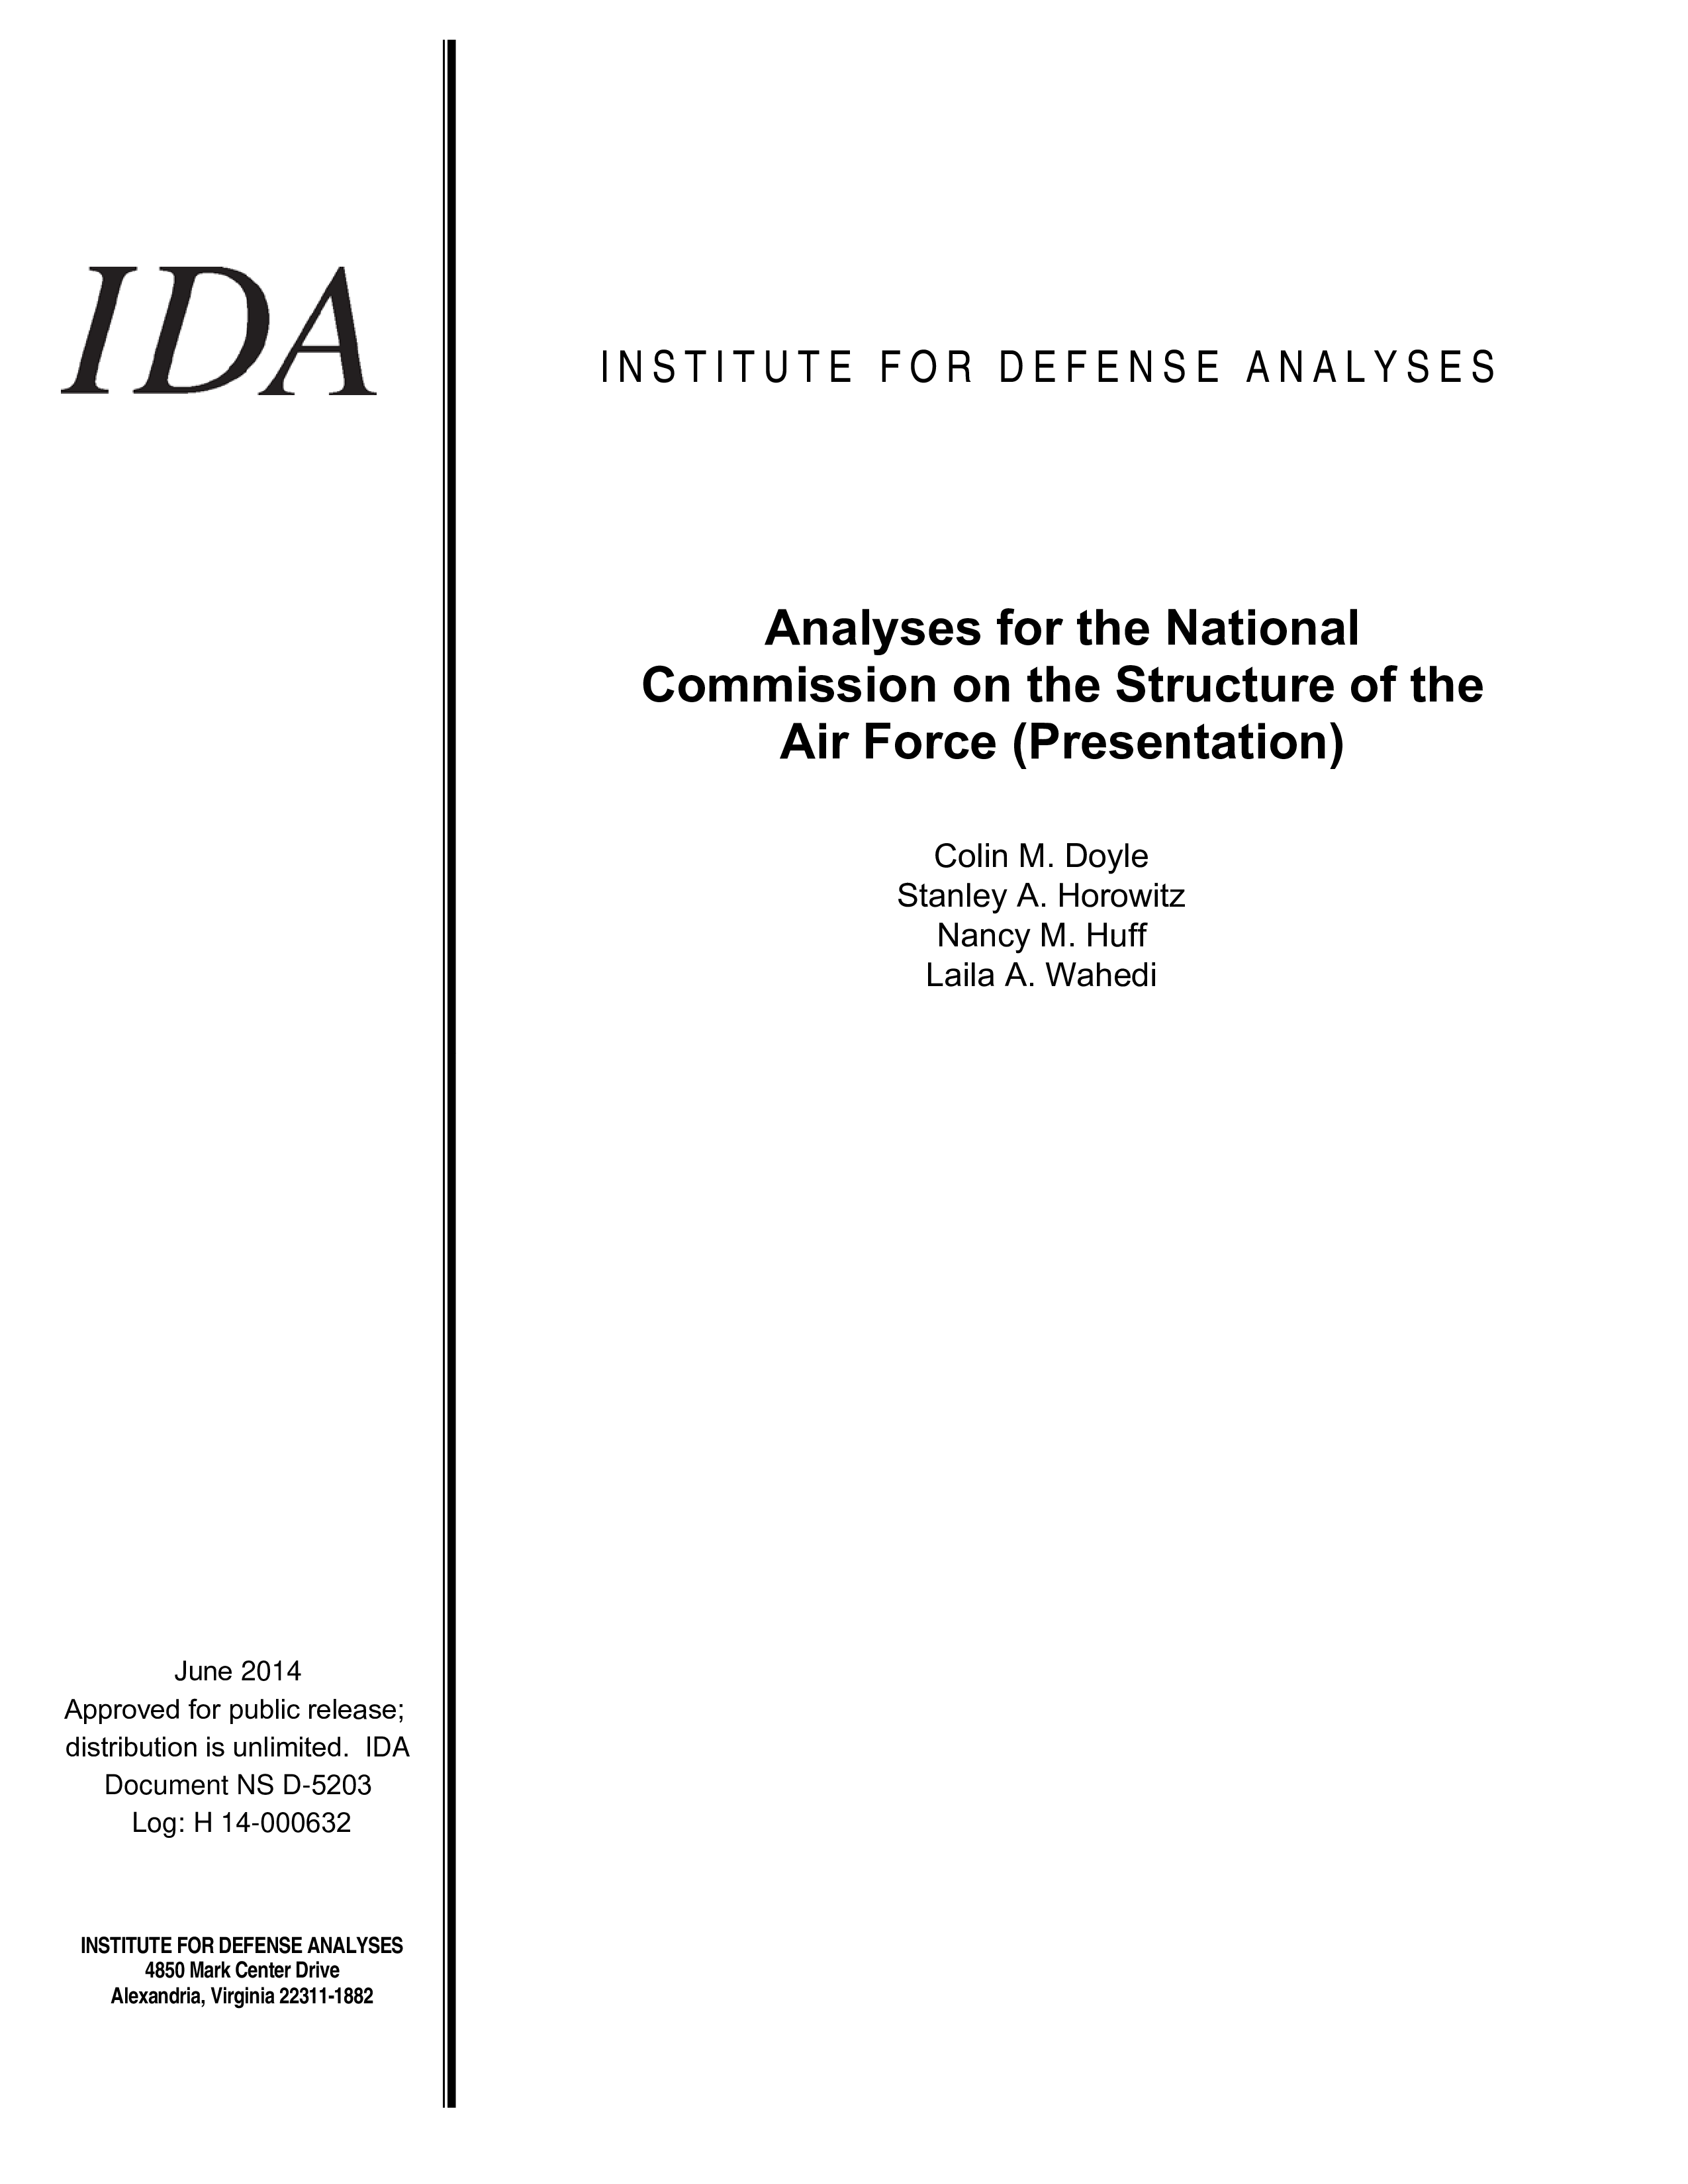 Analyses for the National Commission on the Structure of the Air Force Presentation